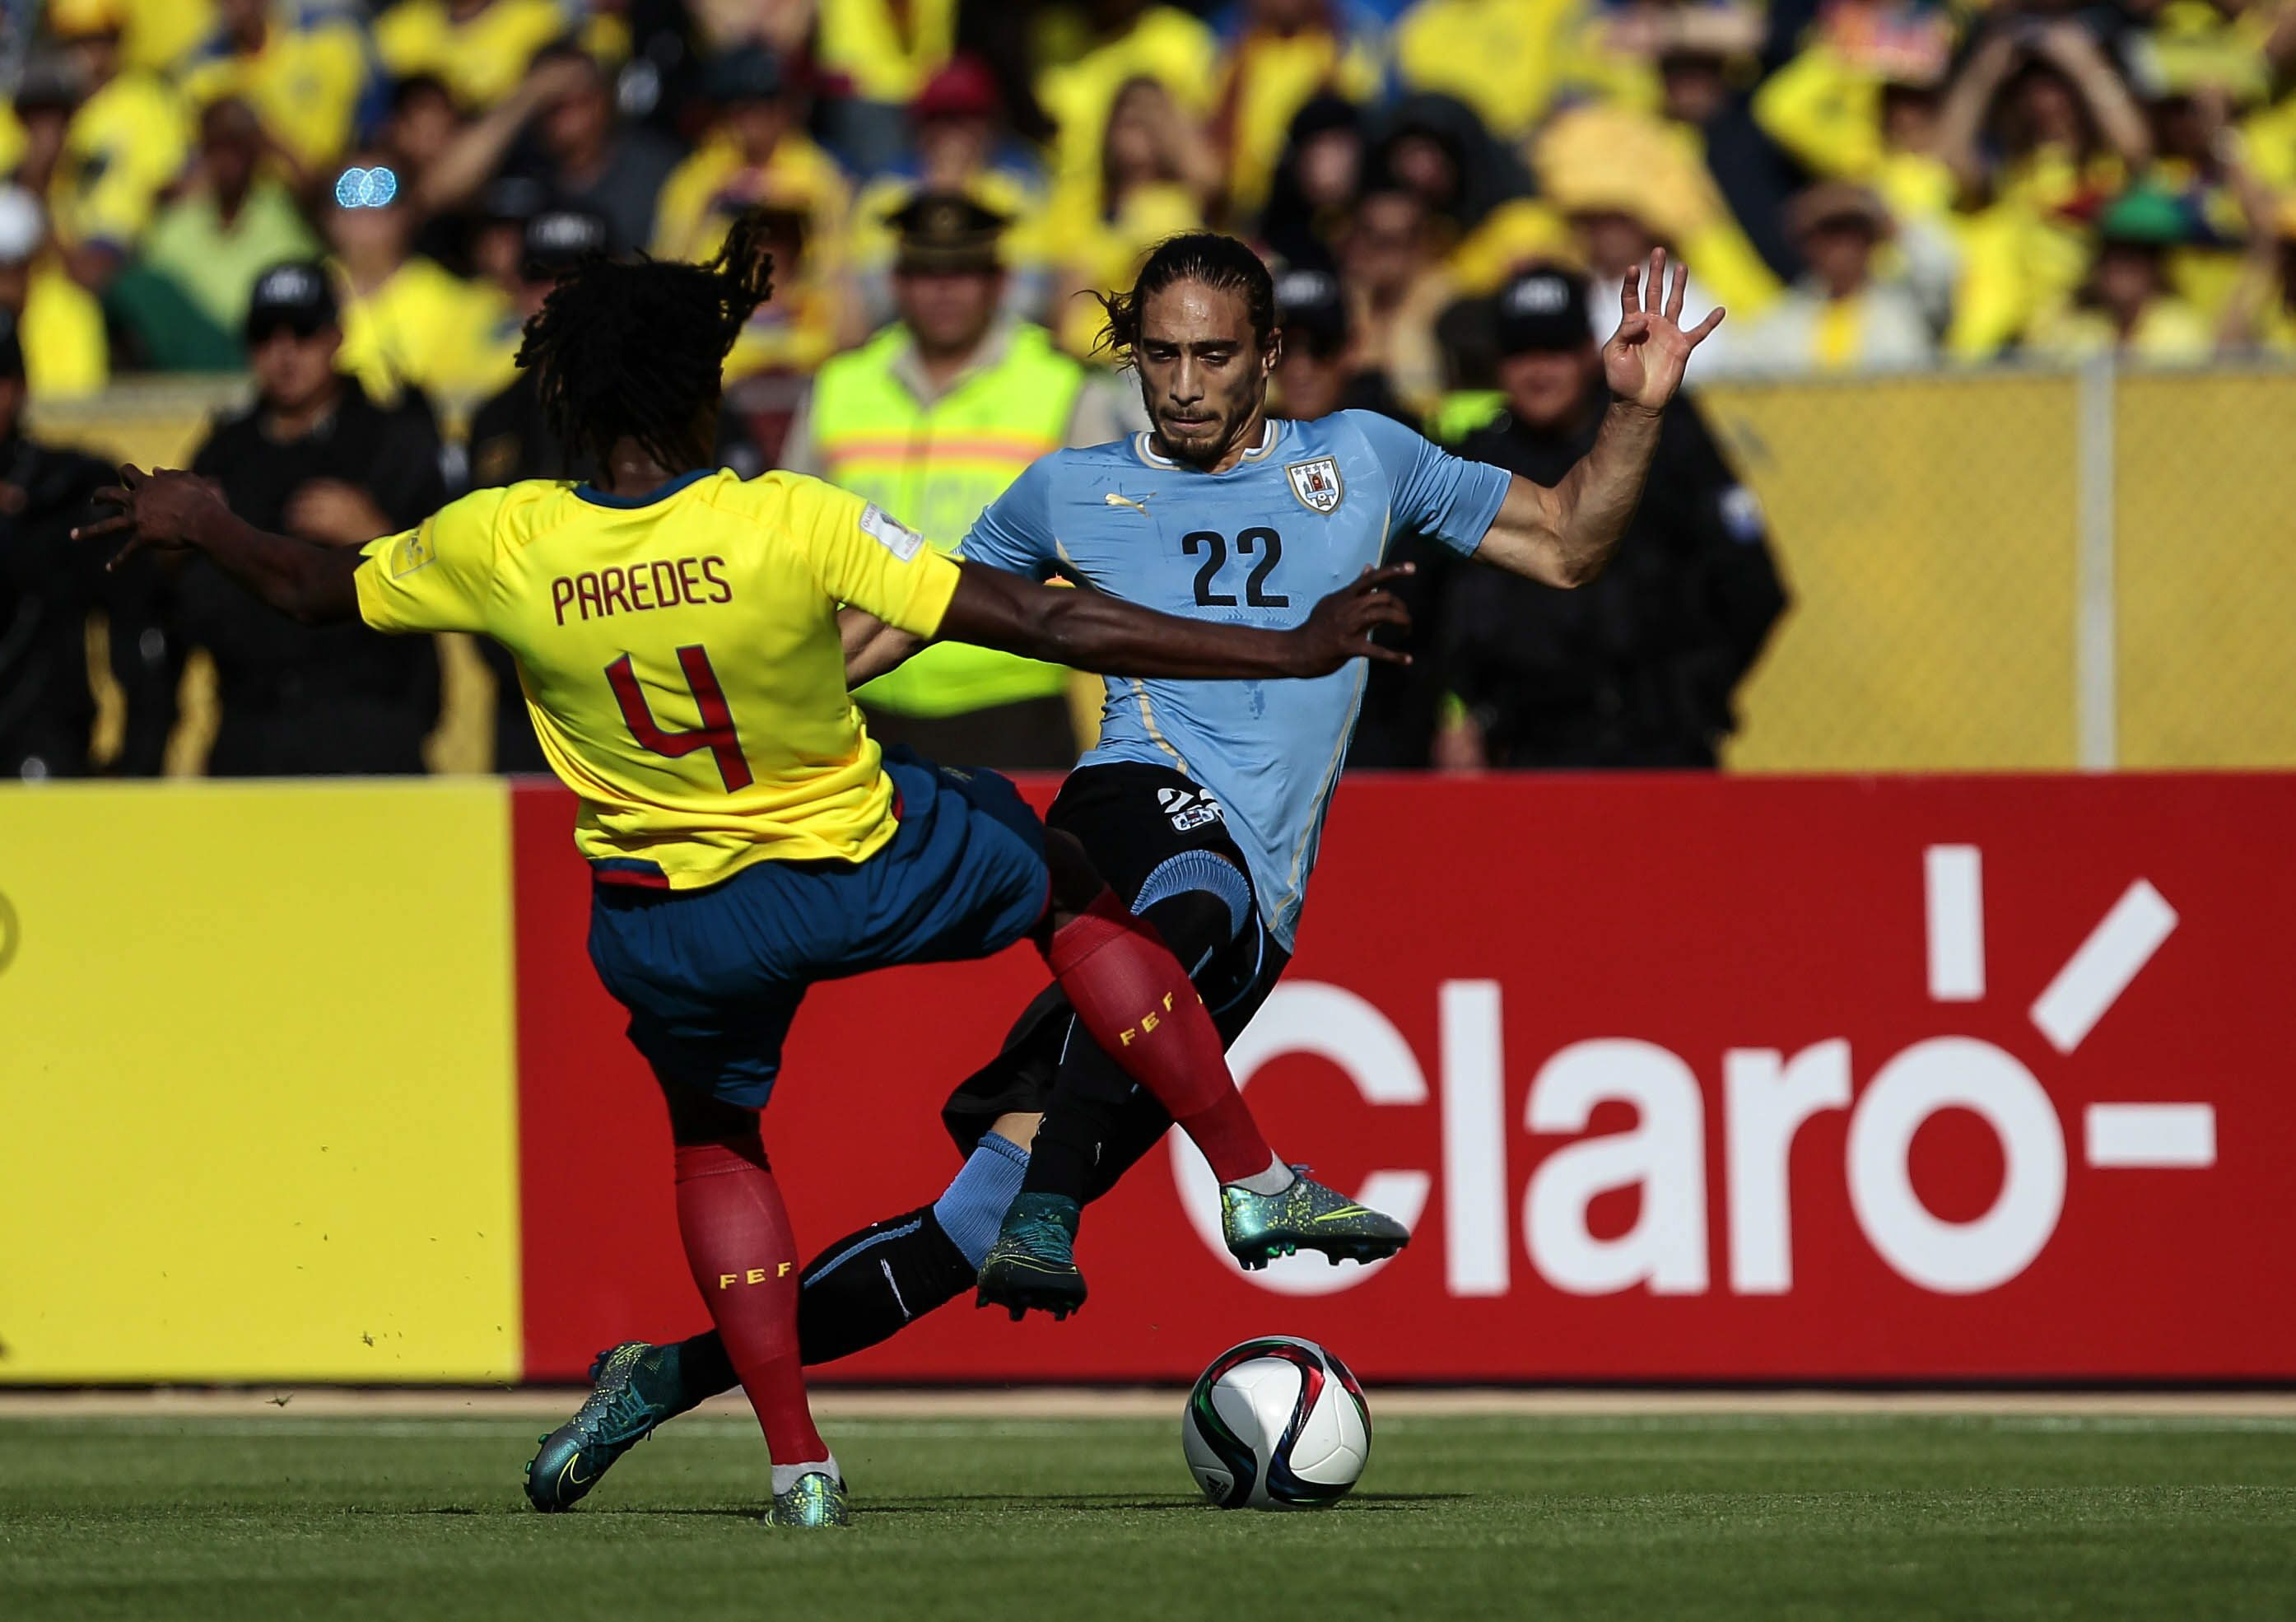 Ecuador's Juan Paredes (L) vies for the ball against Martin Caceres (R) of Uruguay during the FIFA World Cup 2018 qualification match between Ecuador and Uruguay at Atahualpa stadium Quito, Ecuador, 12 November 2015. EPA/JOSE JACOME